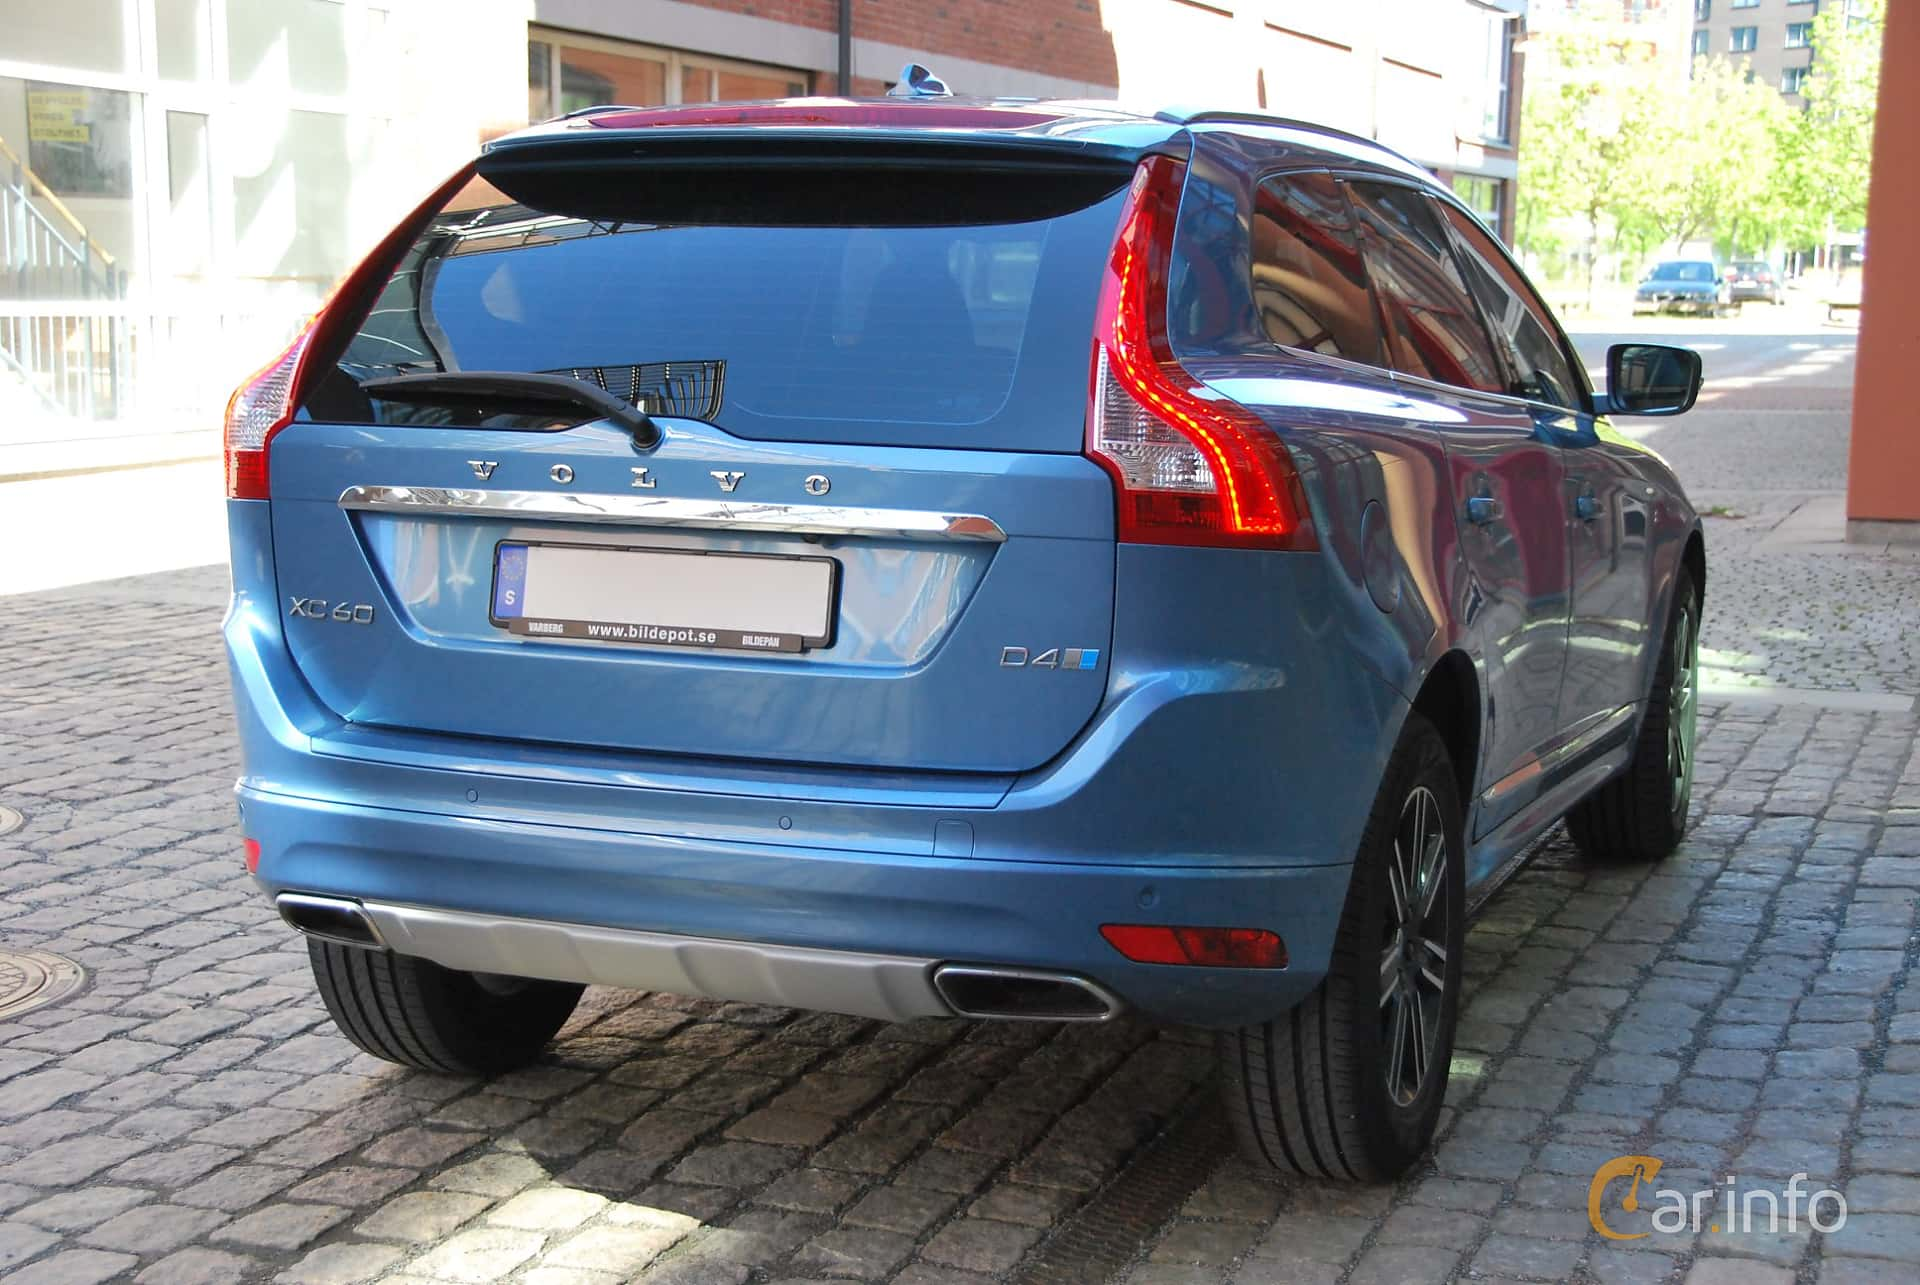 Volvo XC60 D4 Geartronic, 190hp, 2017